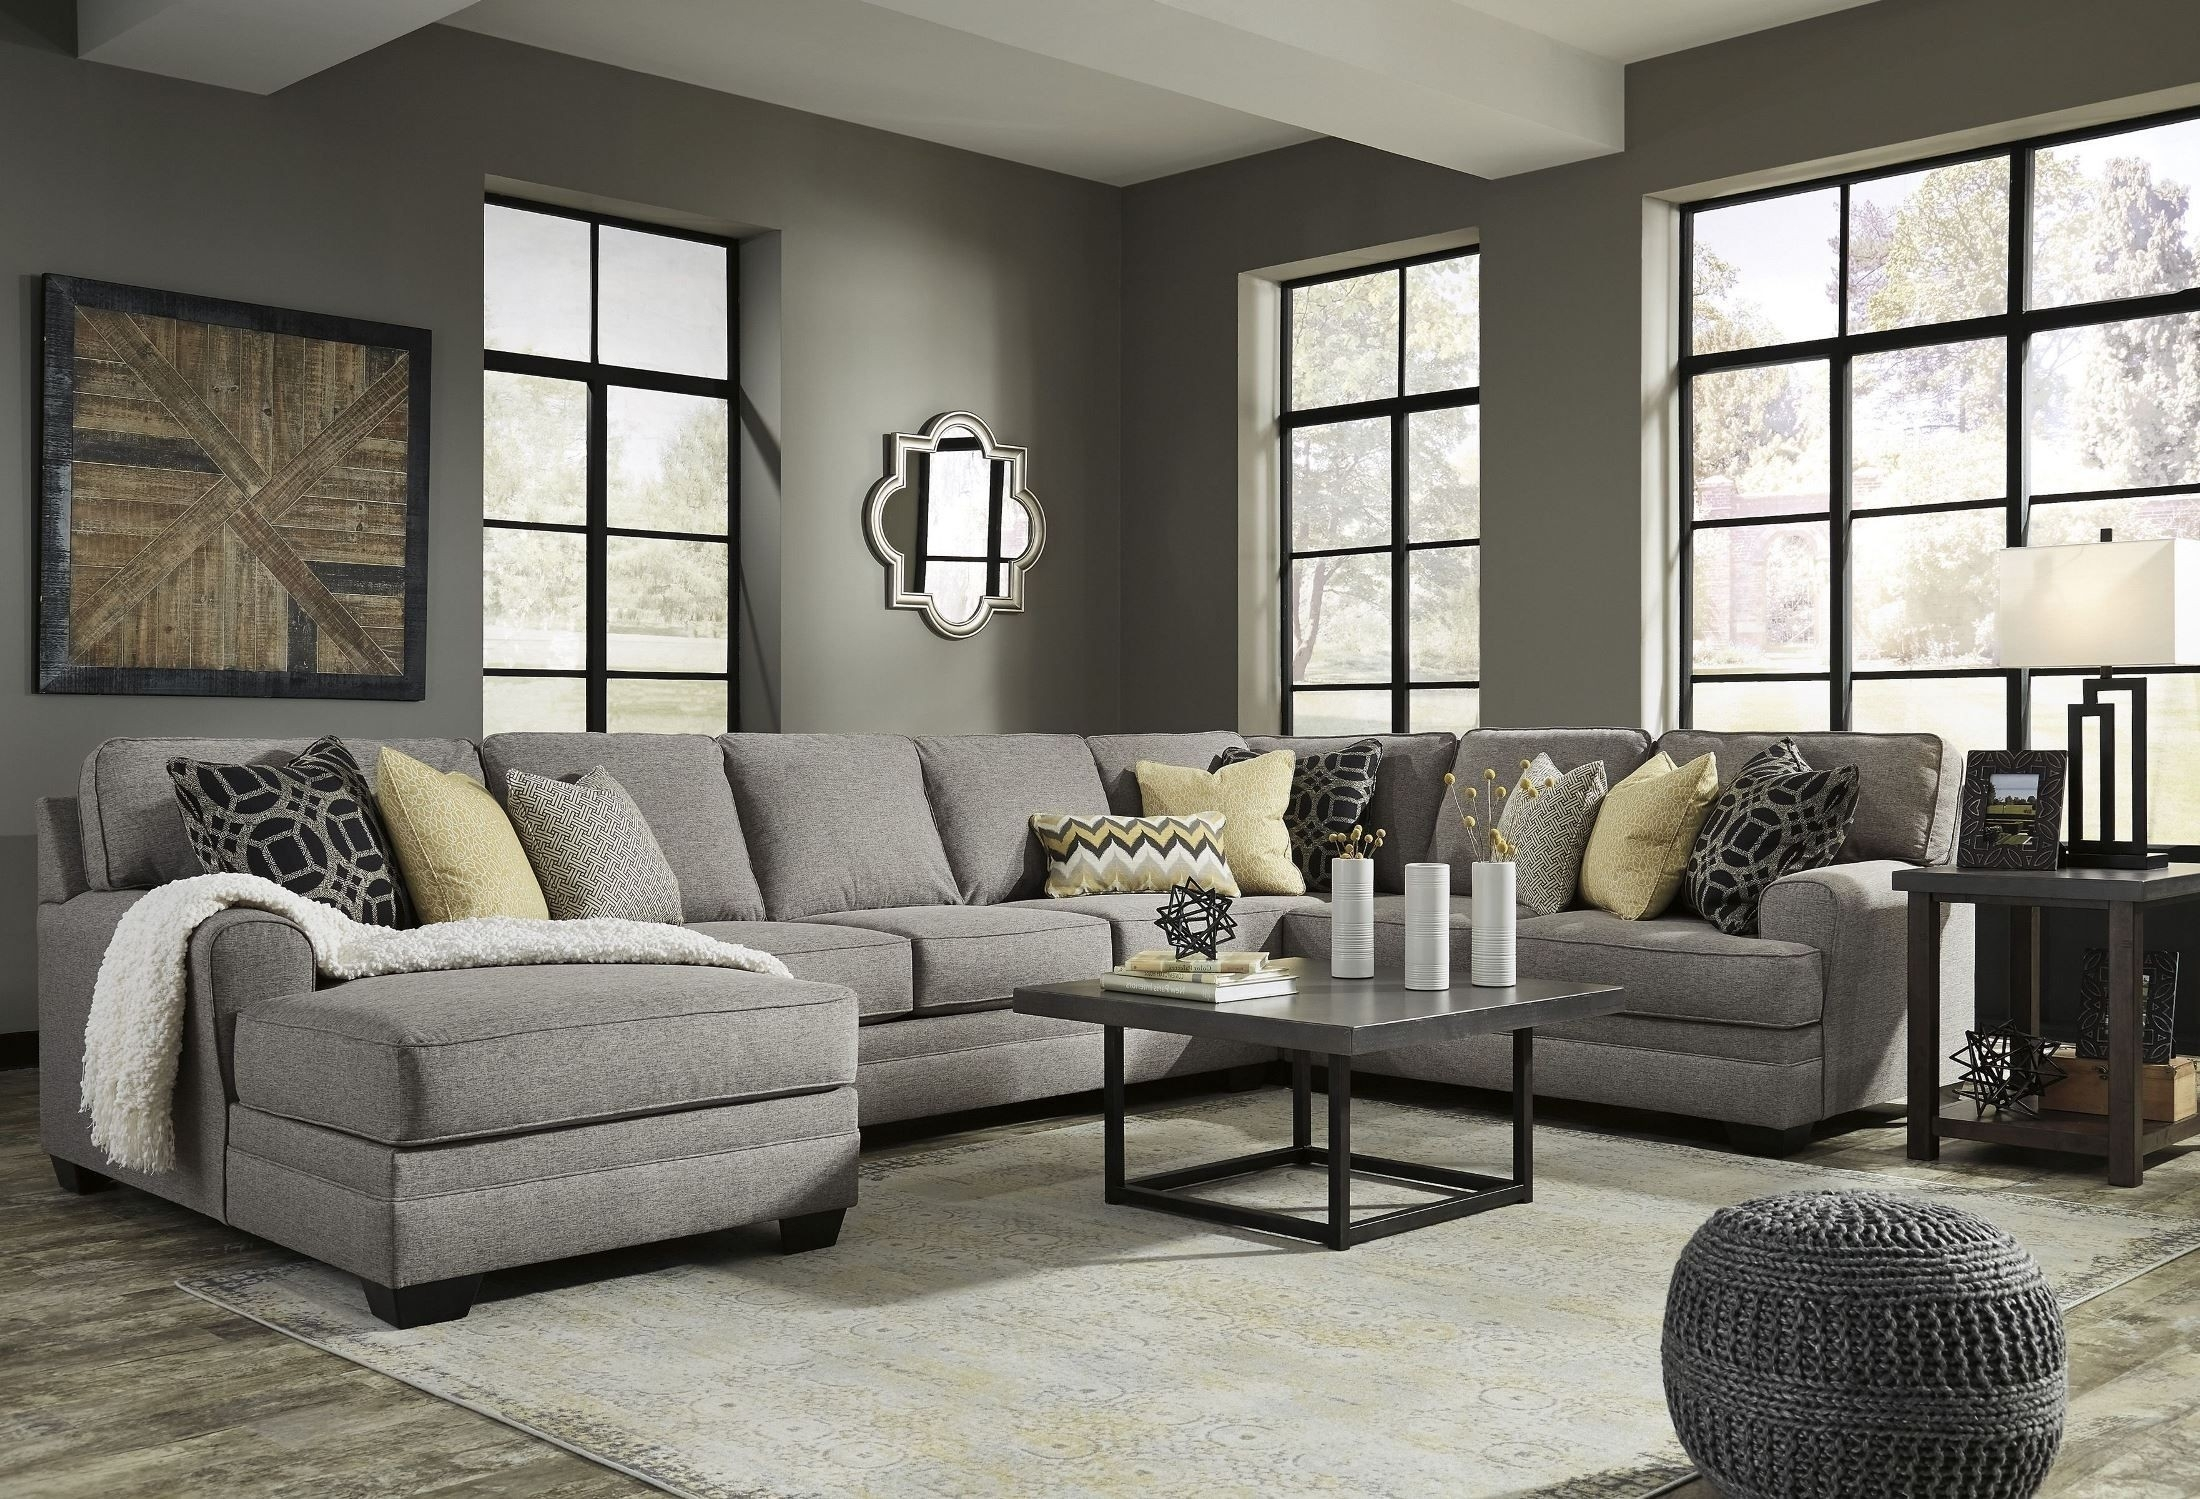 Laf Sectional – Le Siecle Within Avery 2 Piece Sectionals With Raf Armless Chaise (View 21 of 25)